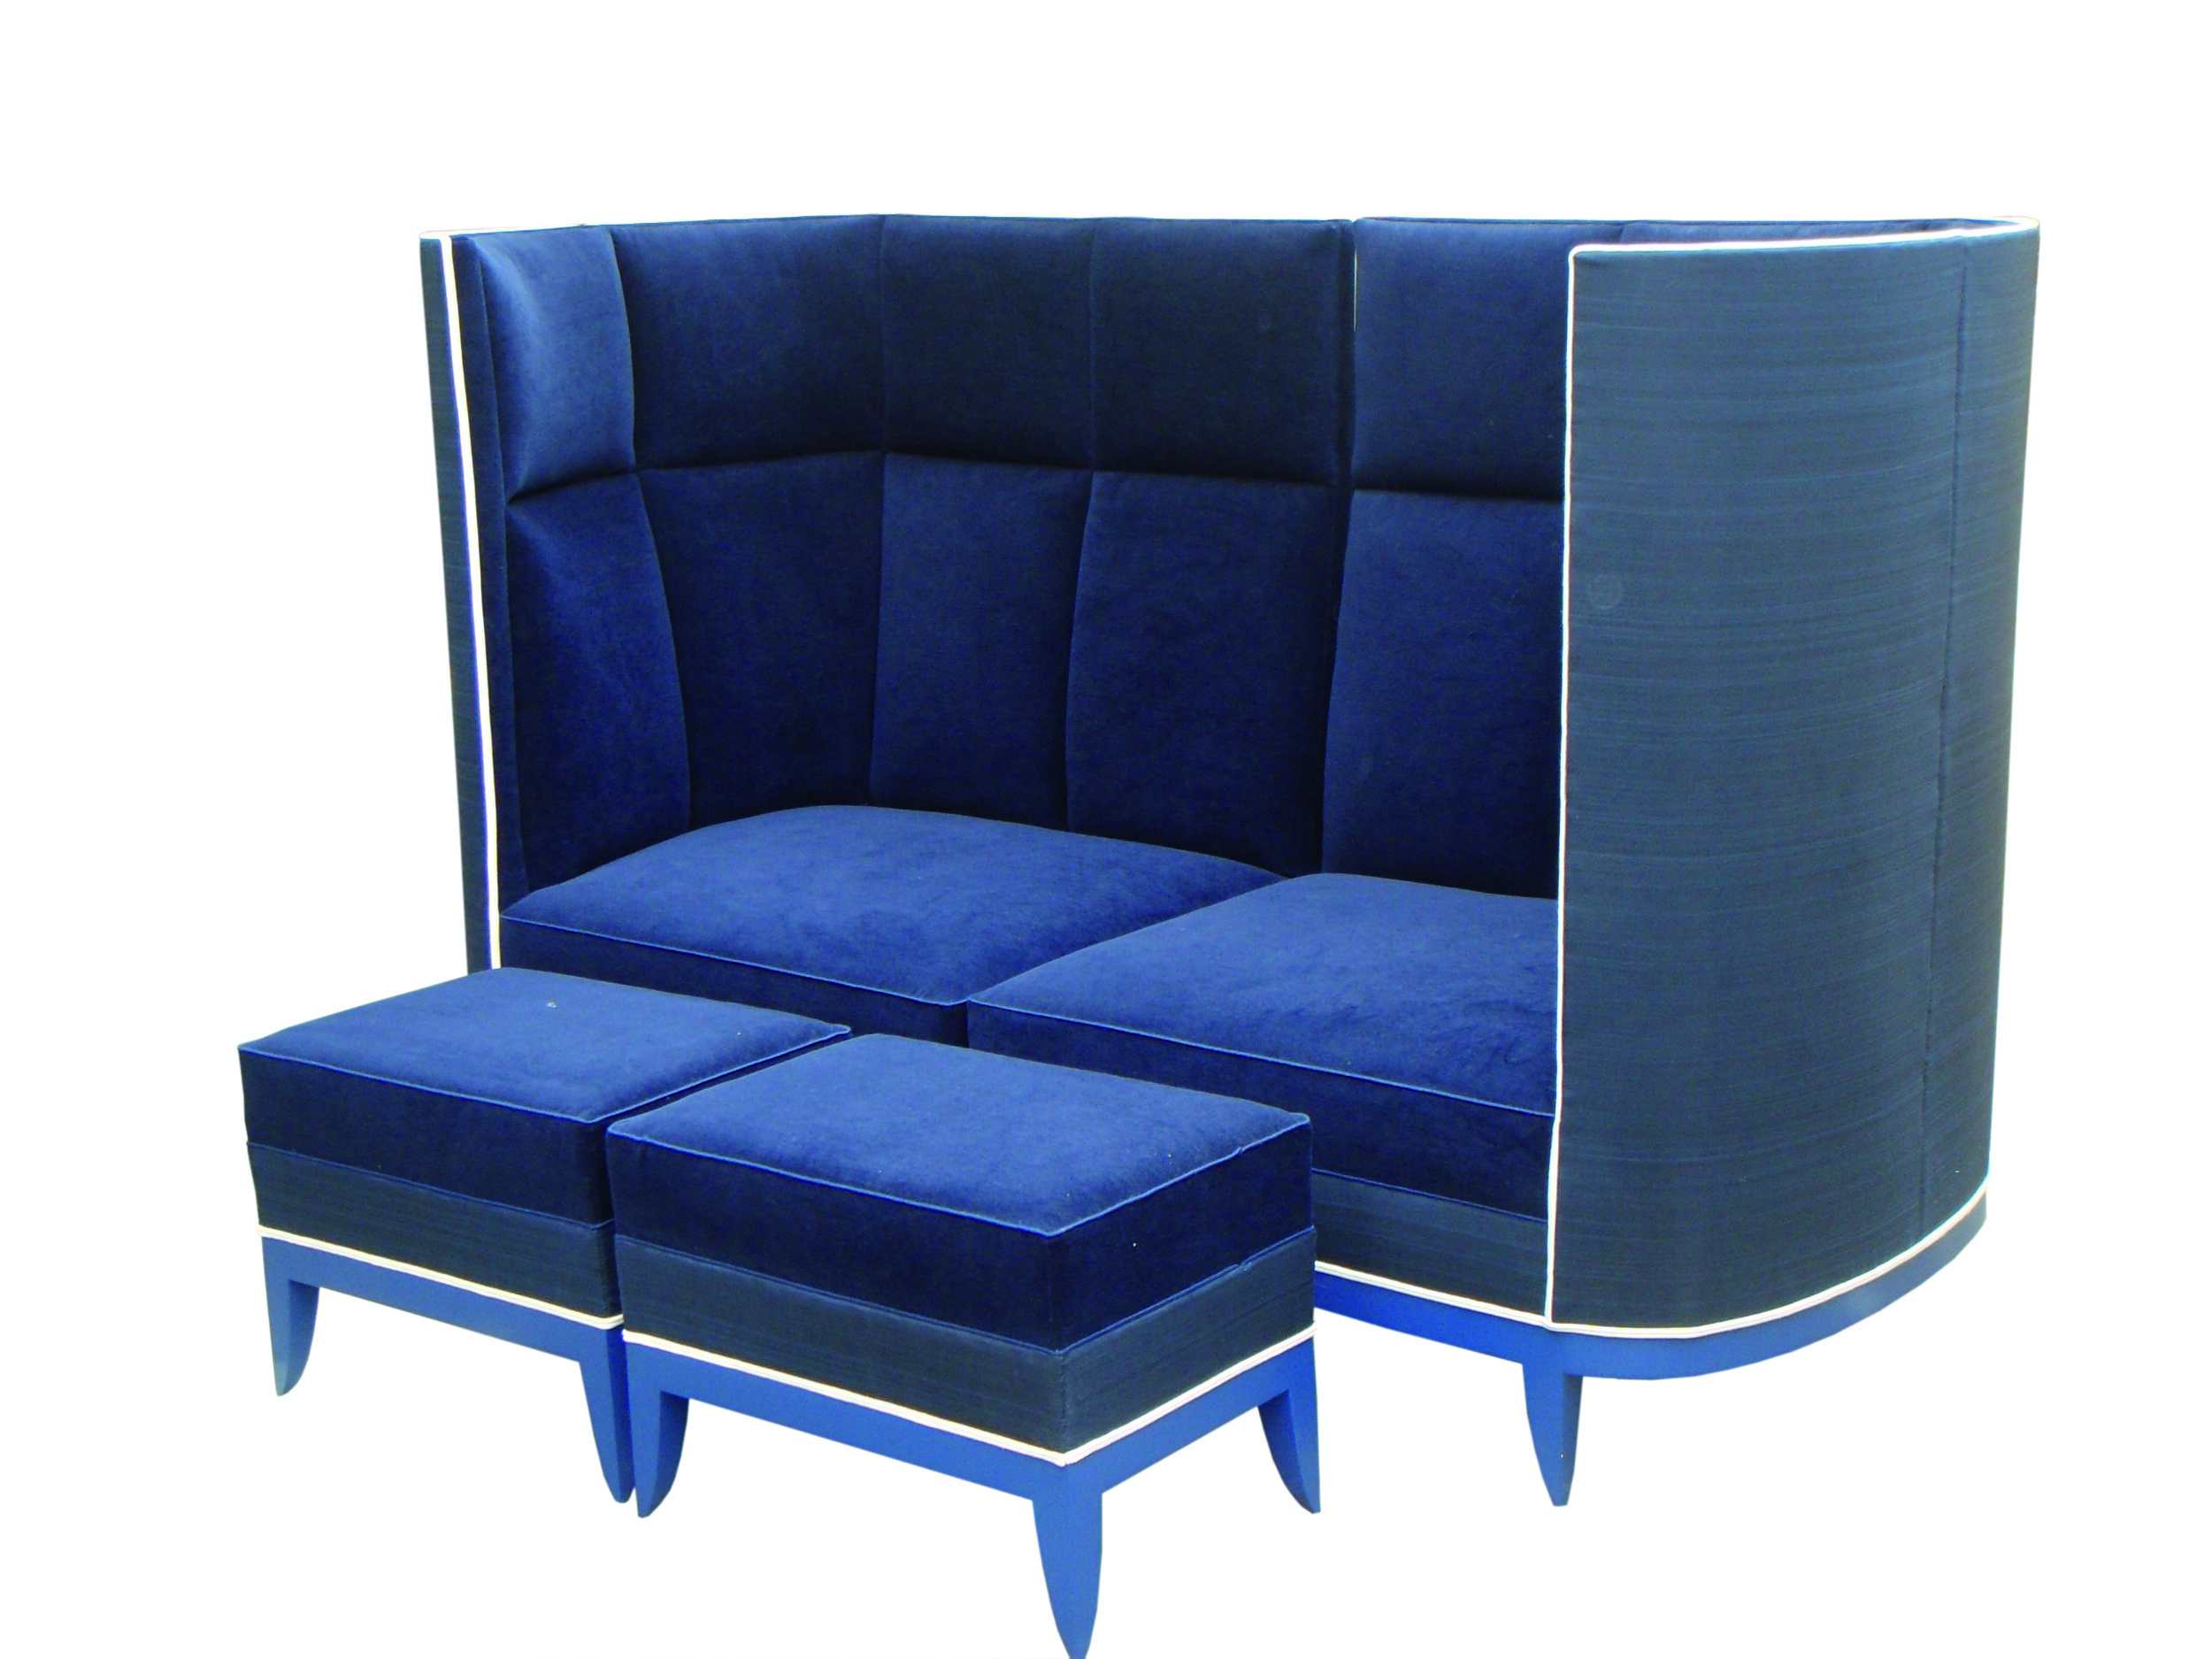 This high backed sofa with run up stools was a particularly striking piece, which we made four of for the Dorchester. We used gloss painted showwood in blue and white to complement the plush blue upholstery.